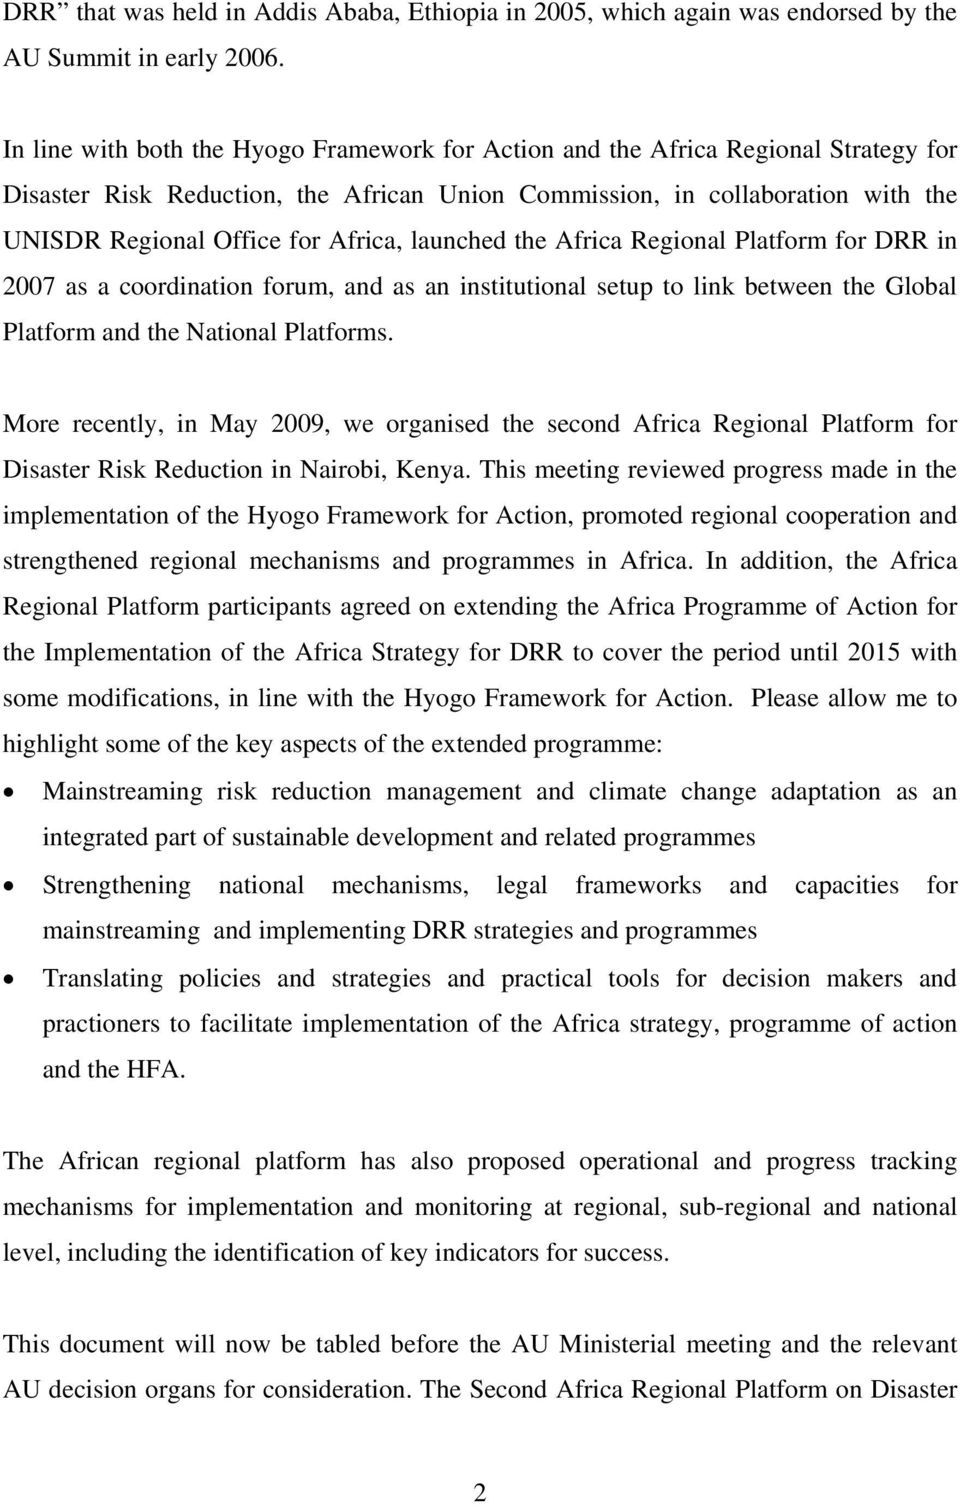 Africa, launched the Africa Regional Platform for DRR in 2007 as a coordination forum, and as an institutional setup to link between the Global Platform and the National Platforms.